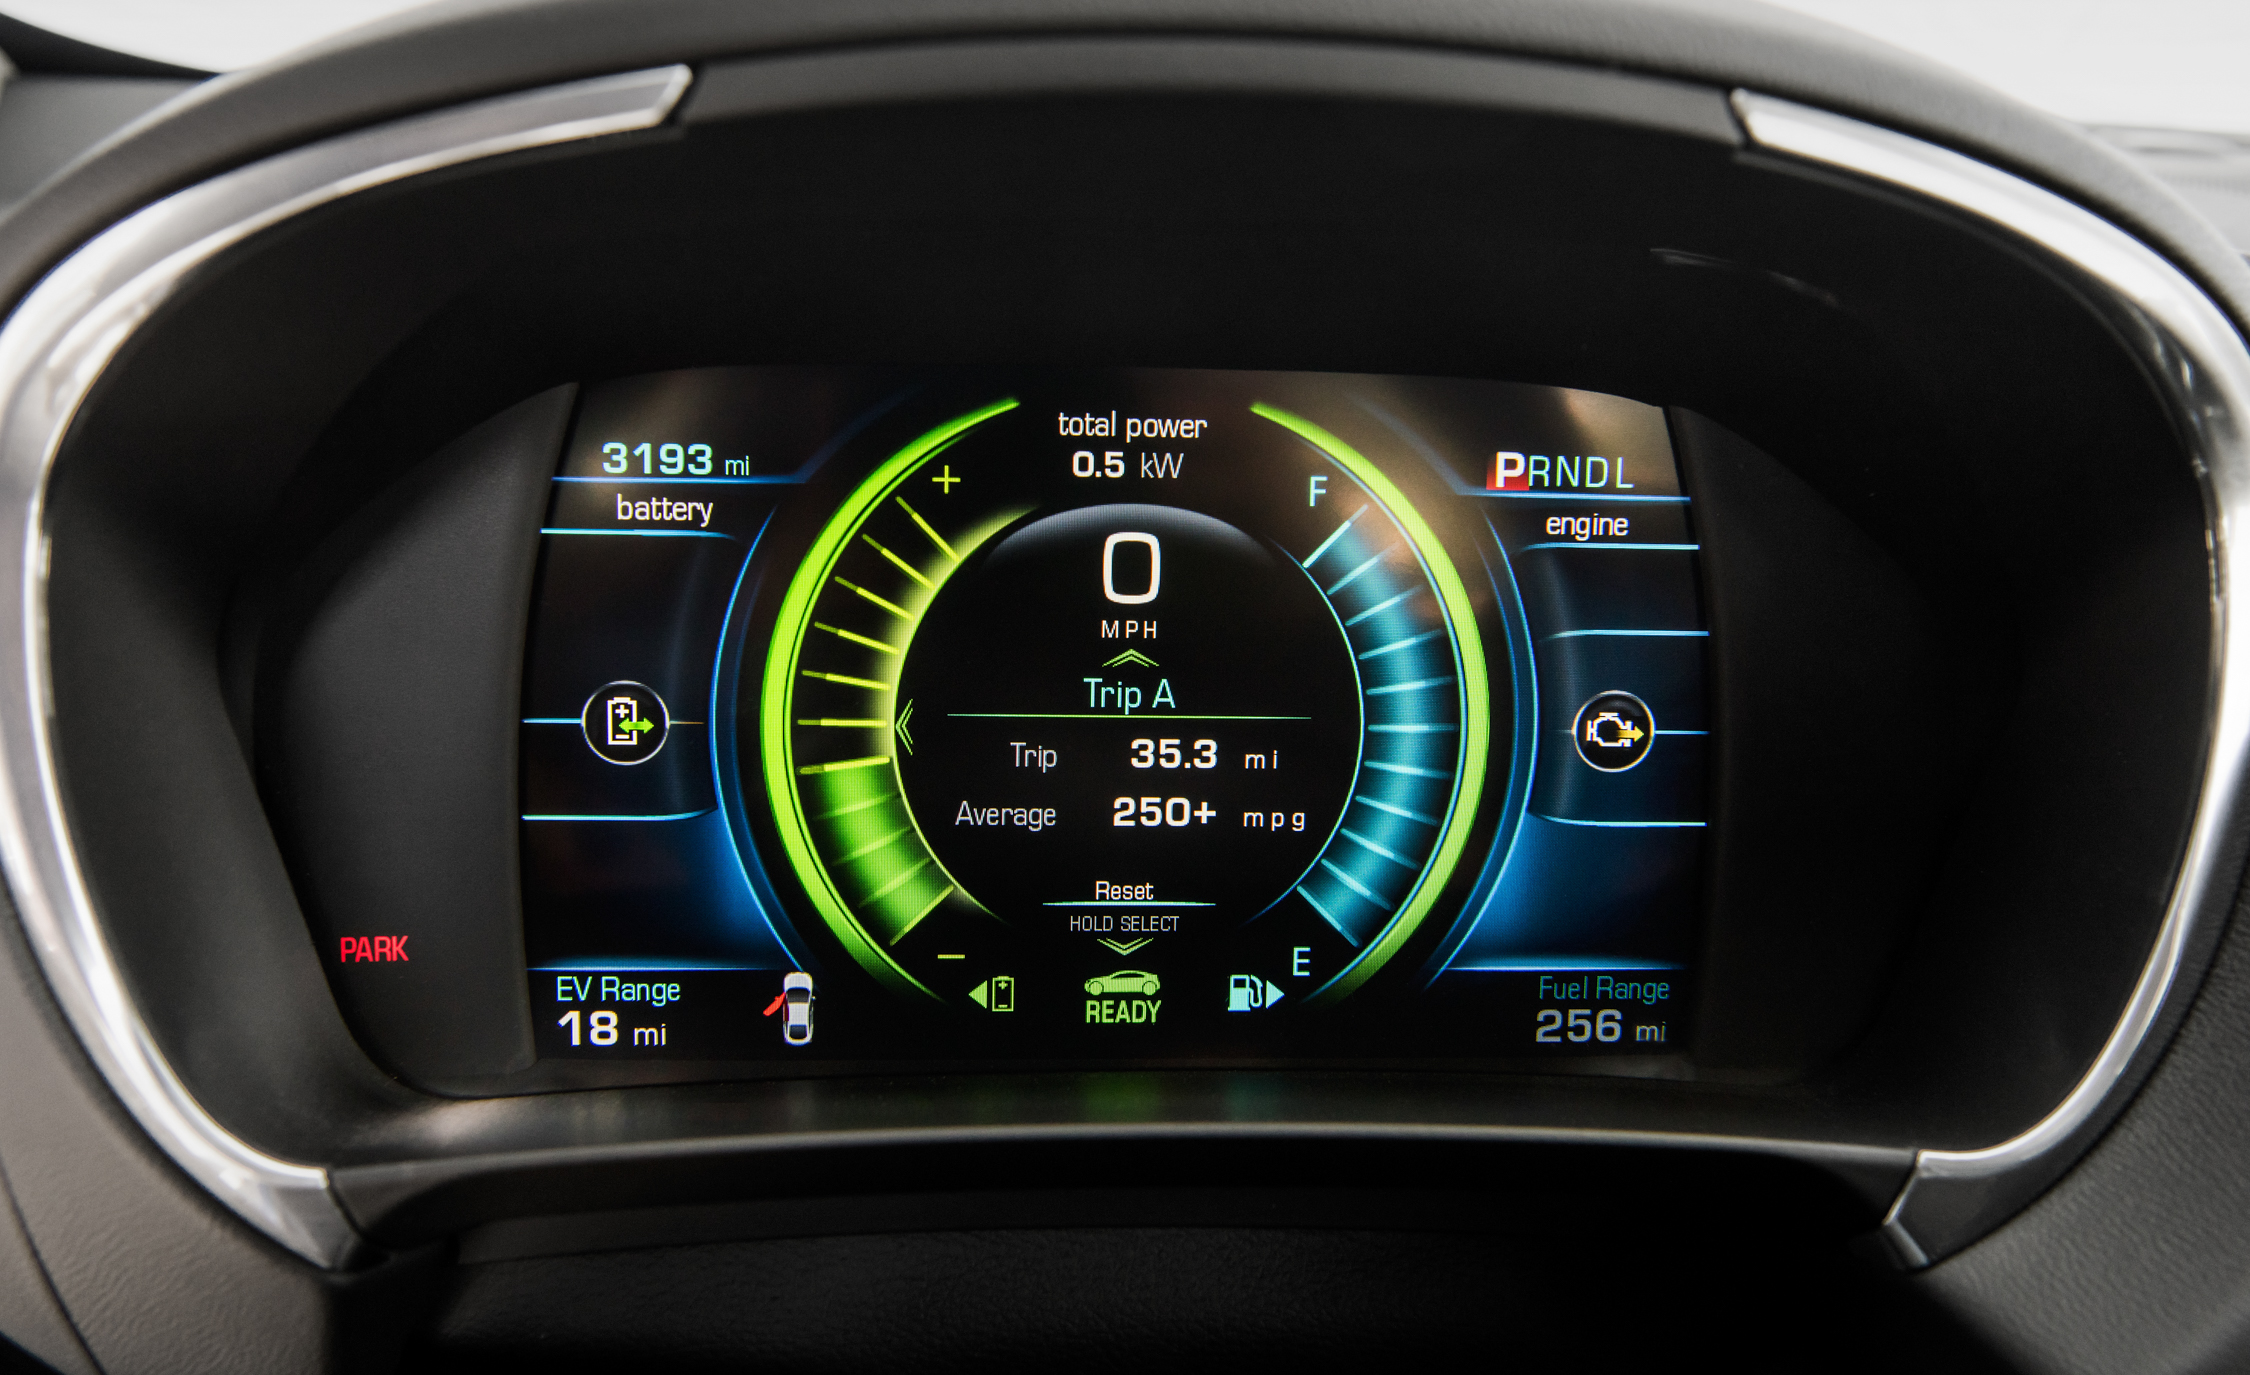 2017 Chevrolet Volt Interior Speedometer And Instrument Cluster (Photo 11 of 16)